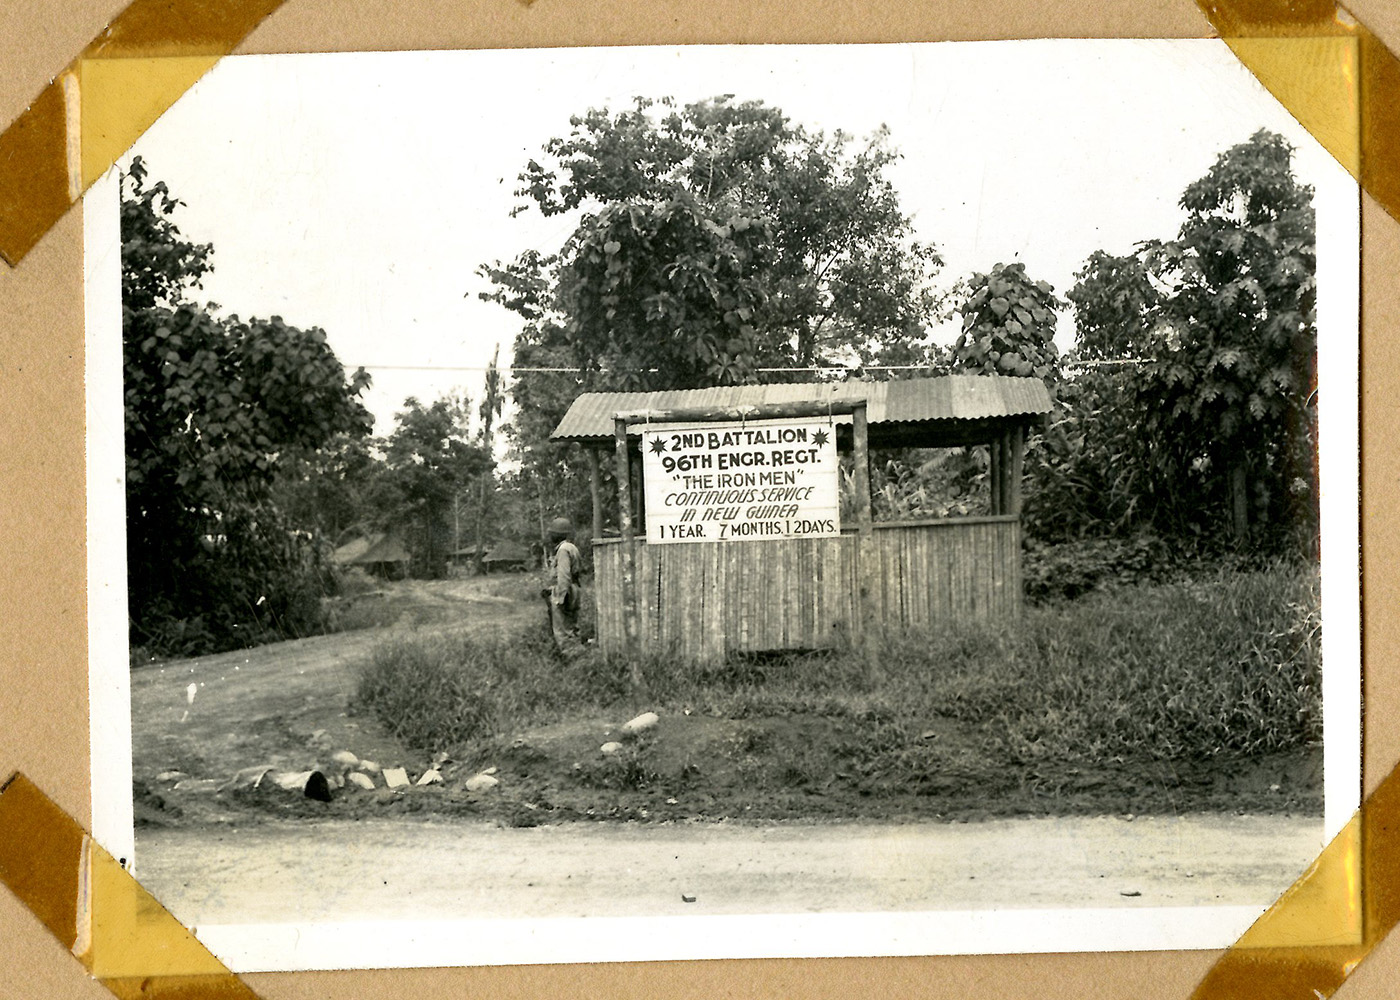 small shack with a sign about the 96th Engineer Regiment